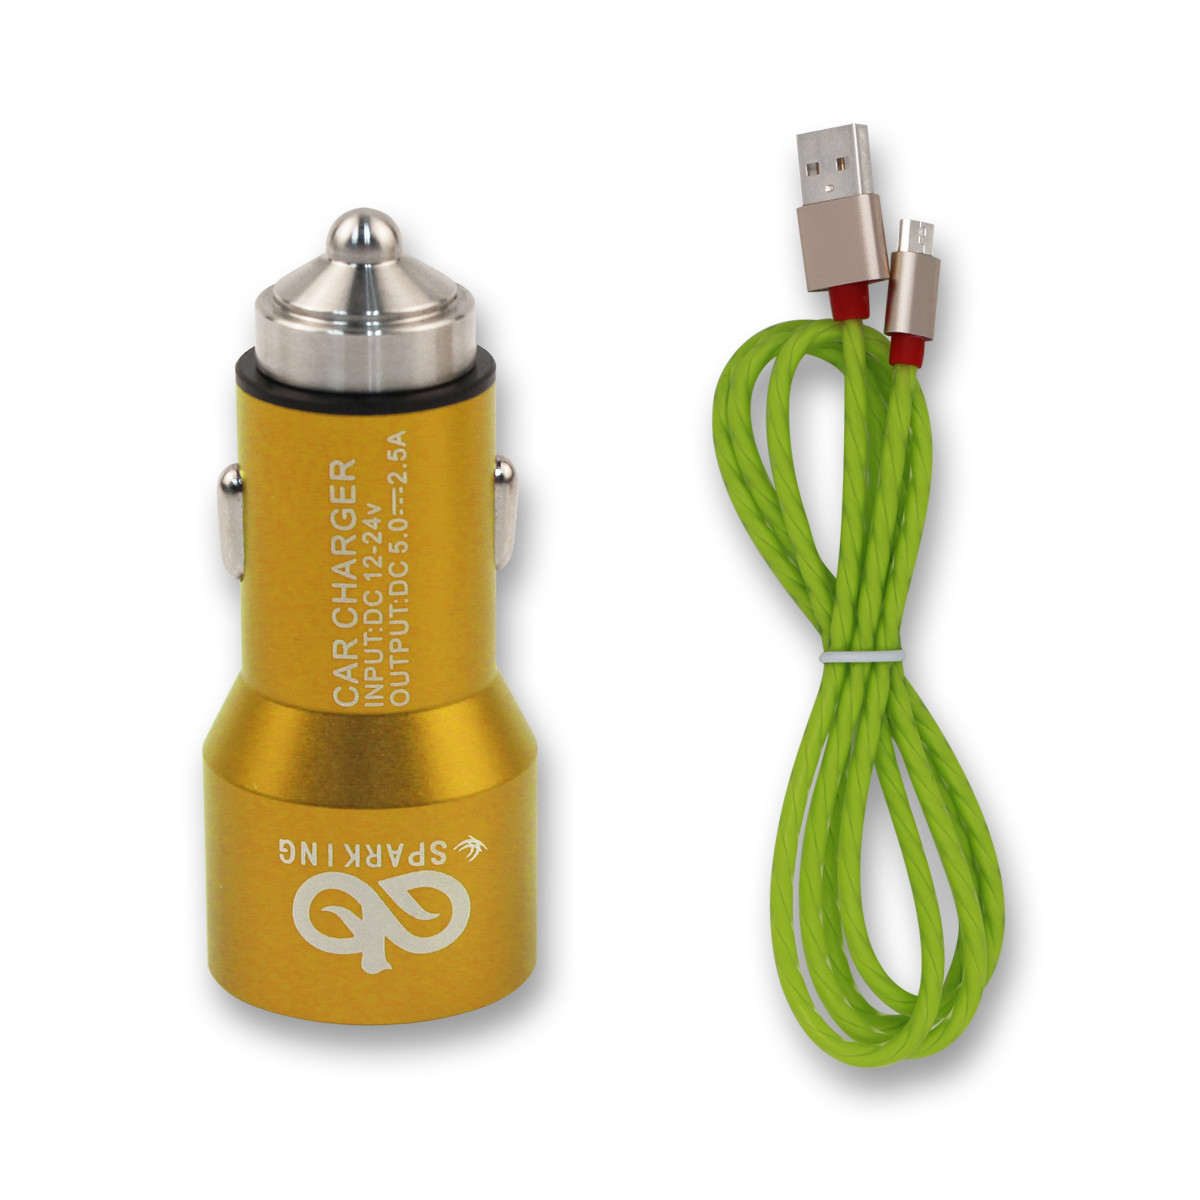 mini high performance dual car USB charger with over chargeing protection